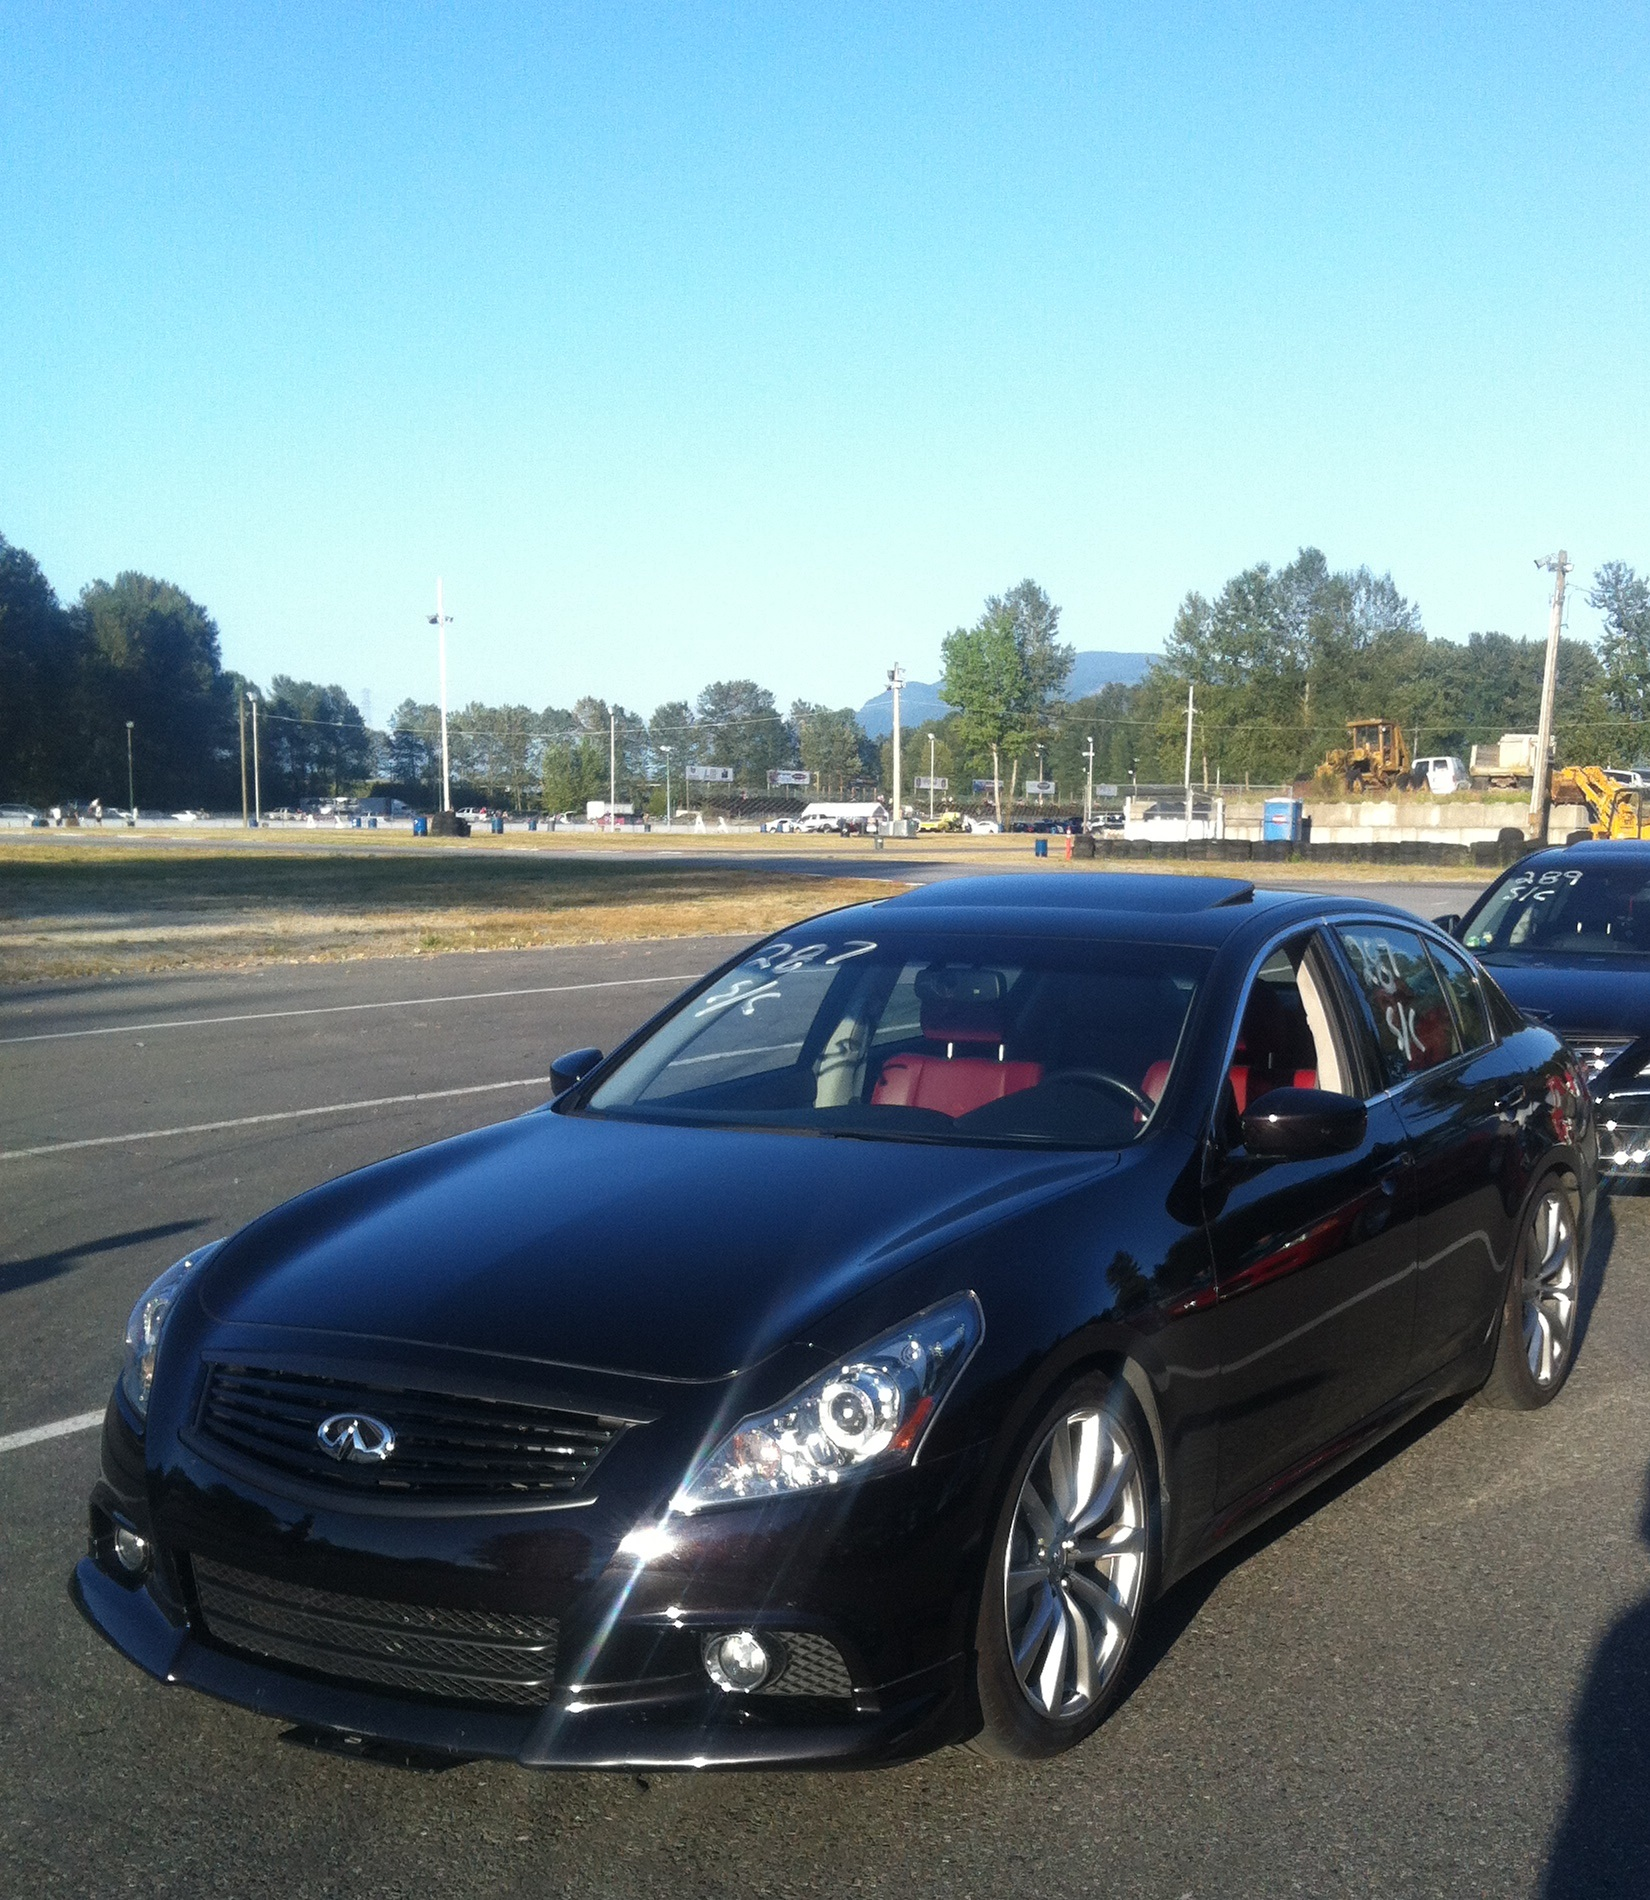 G37 Sedan 0 60 >> 2011 Infiniti G37 Sport 1/4 mile Drag Racing timeslip ...